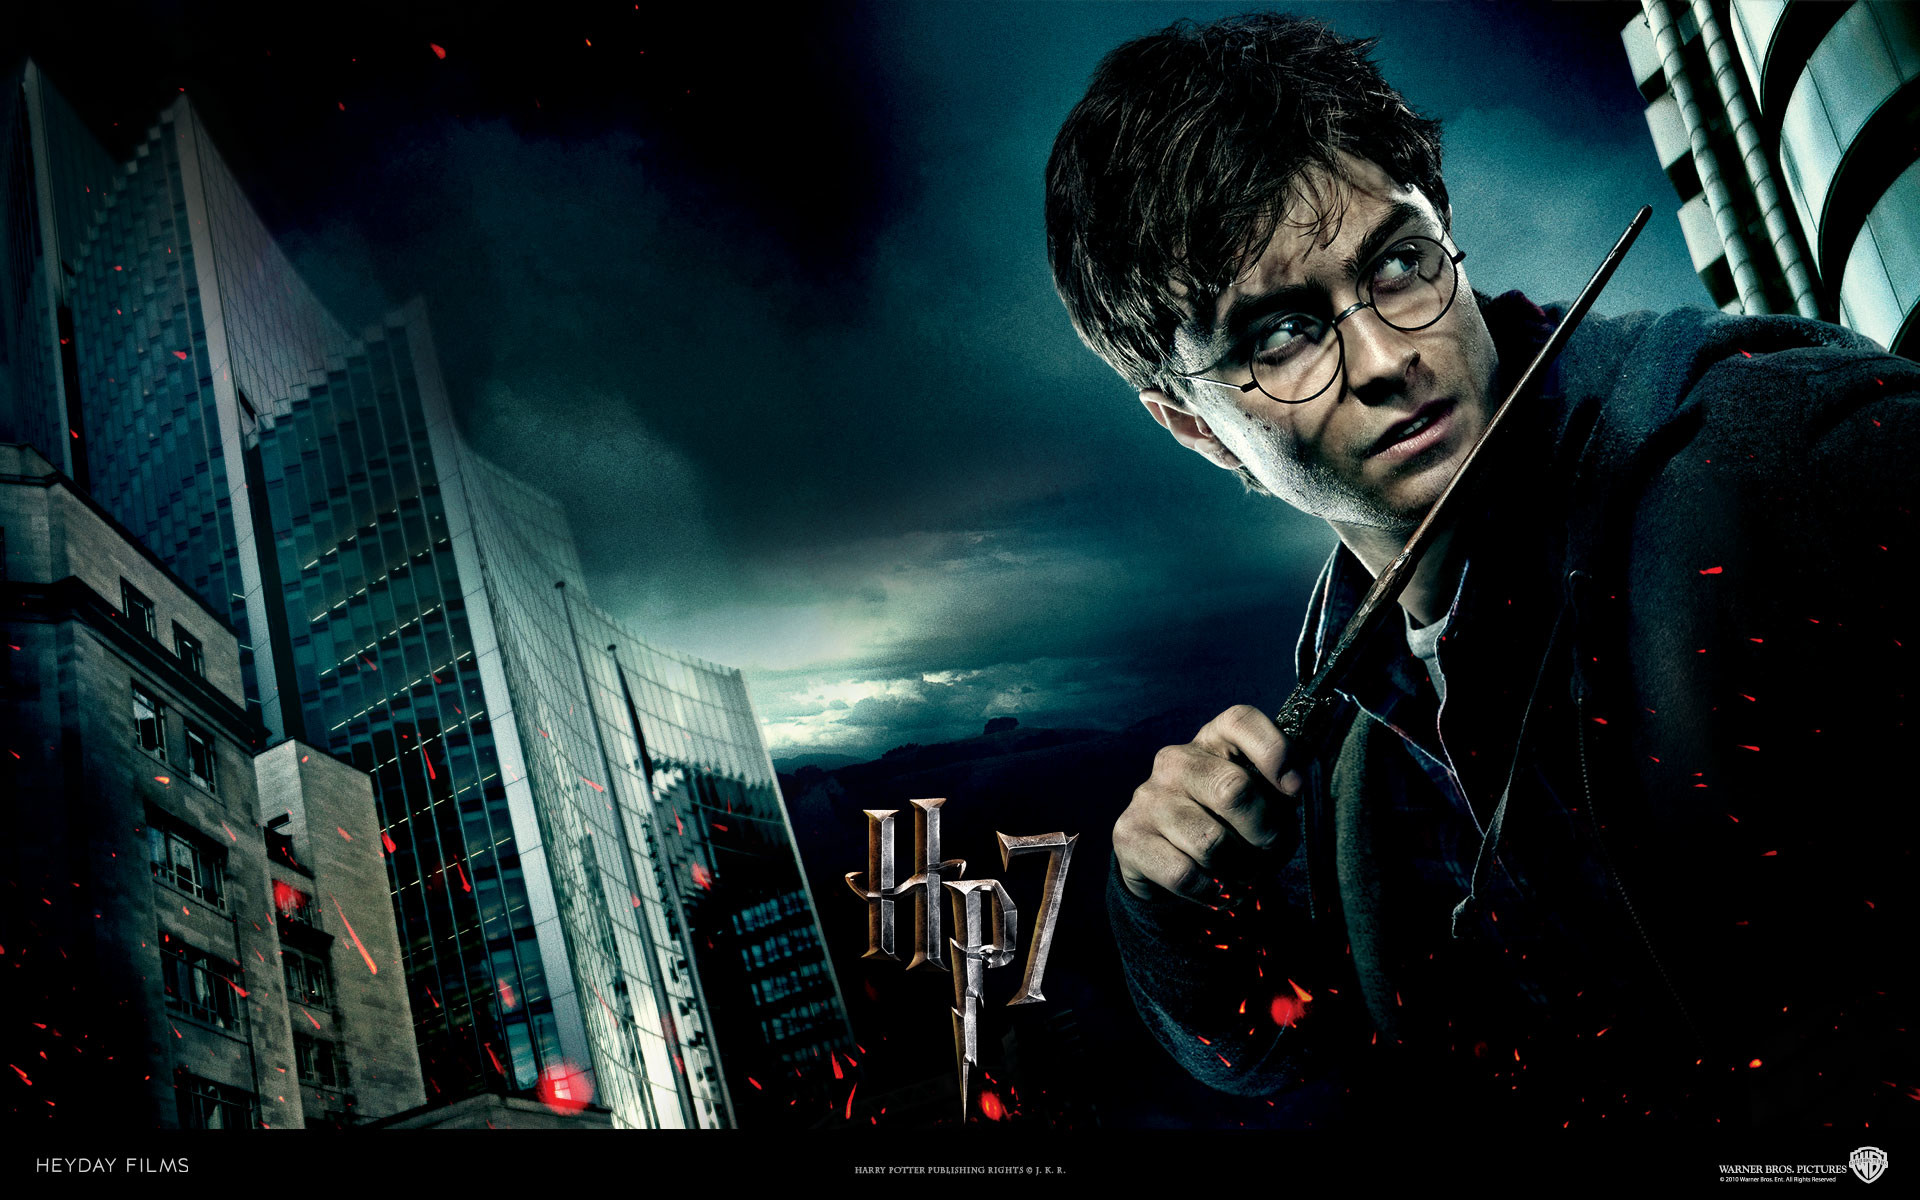 Harry Potter and the Deathly Hallows Wallpapers | HD Wallpapers